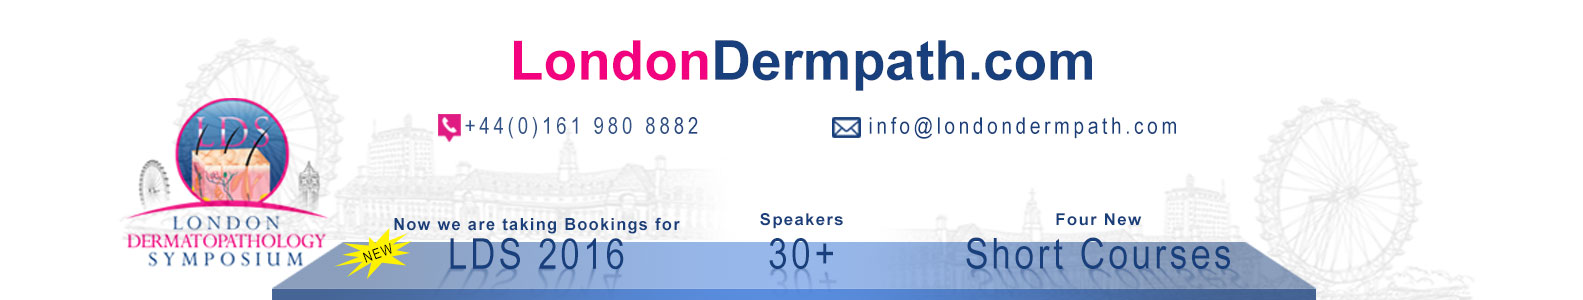 London Dermatopathology Symposium